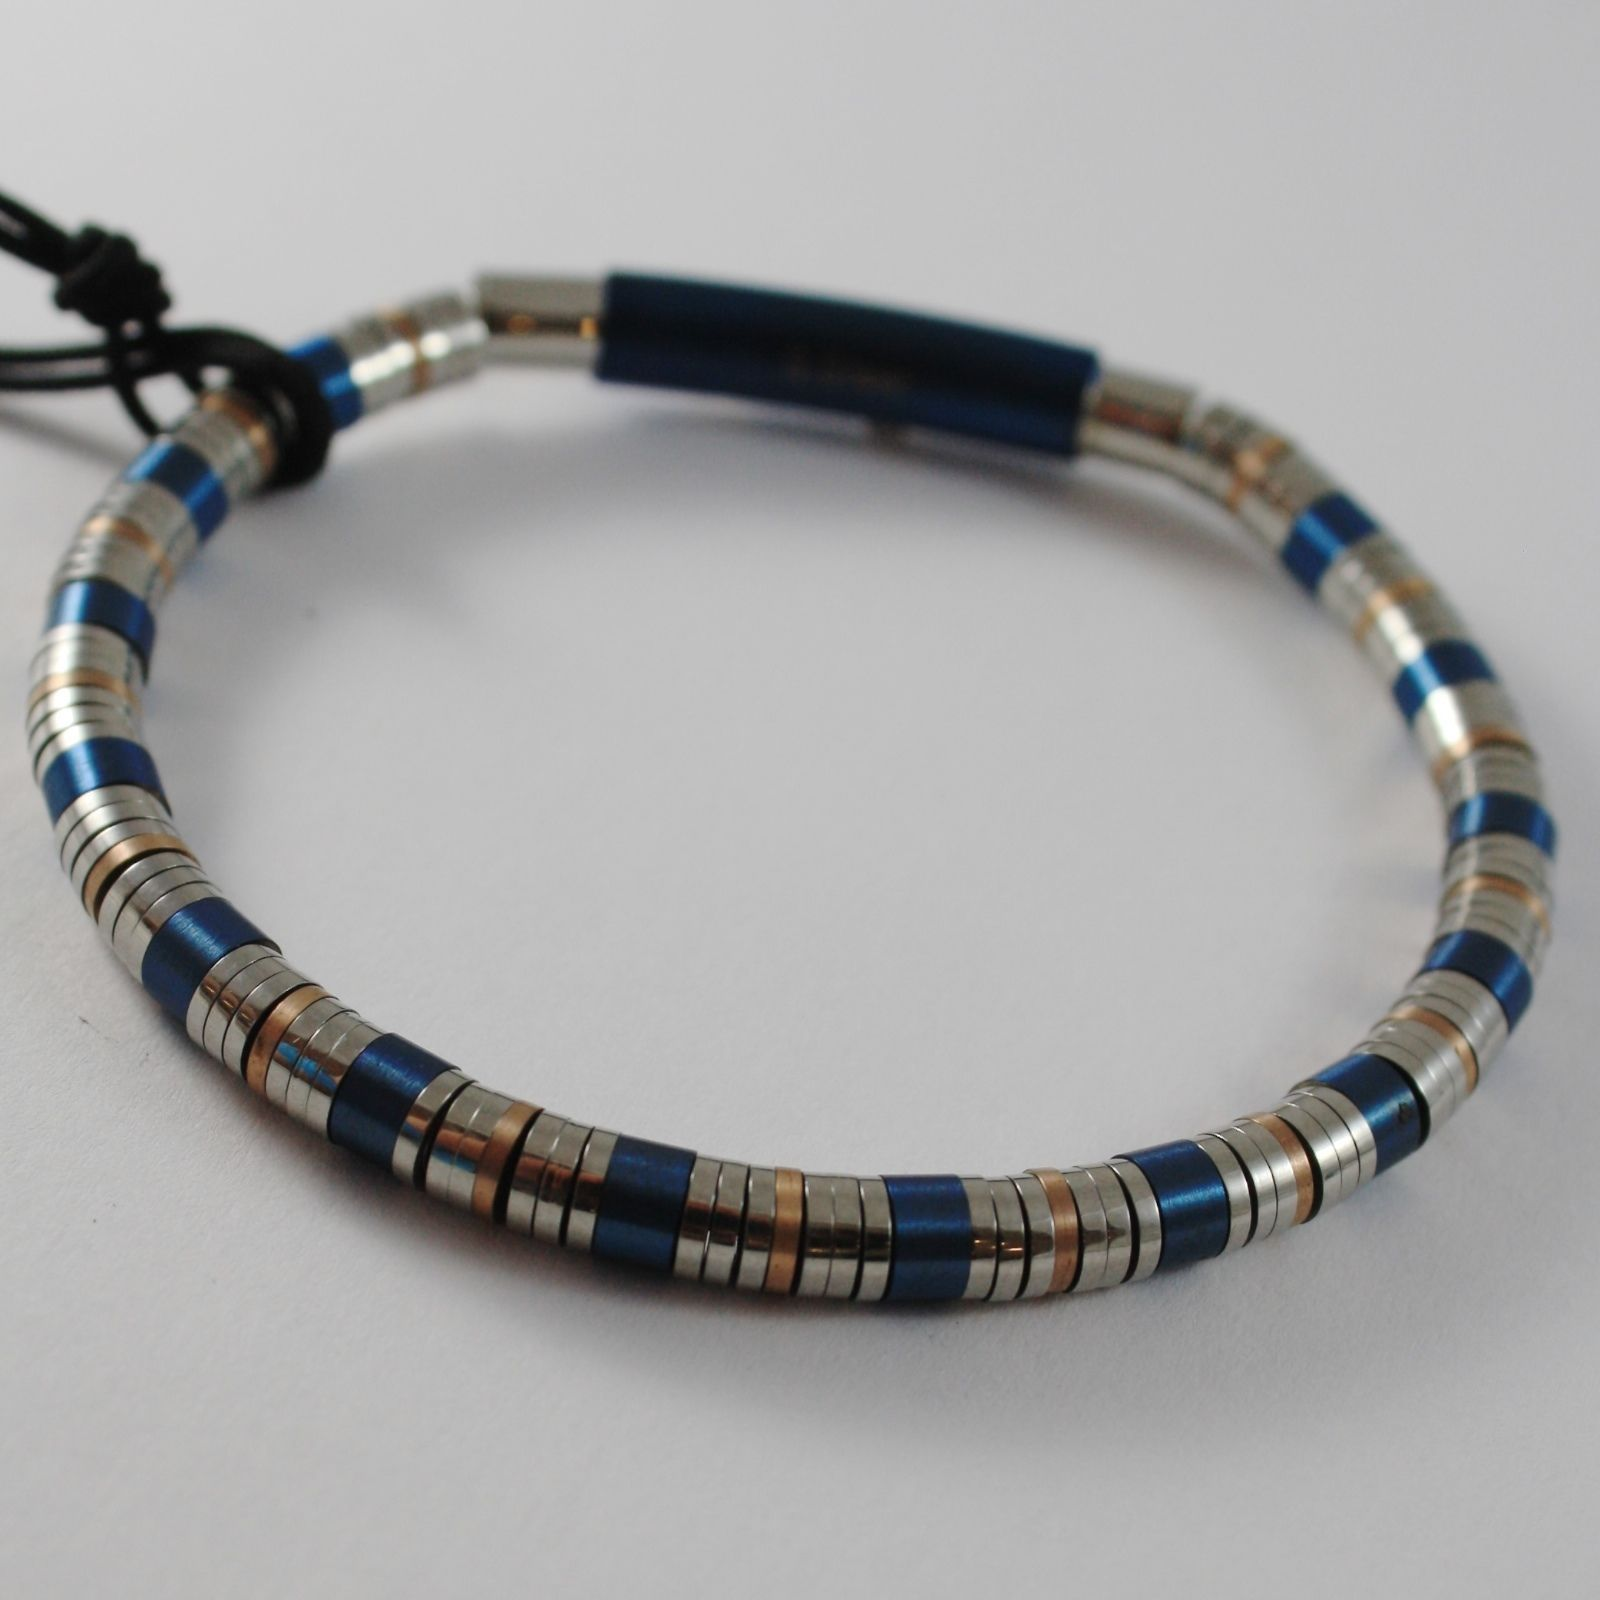 MEN'S BRACELET STEEL SEMI-RIGID CESARE PACIOTTI 4US WITH DISCS BLUE